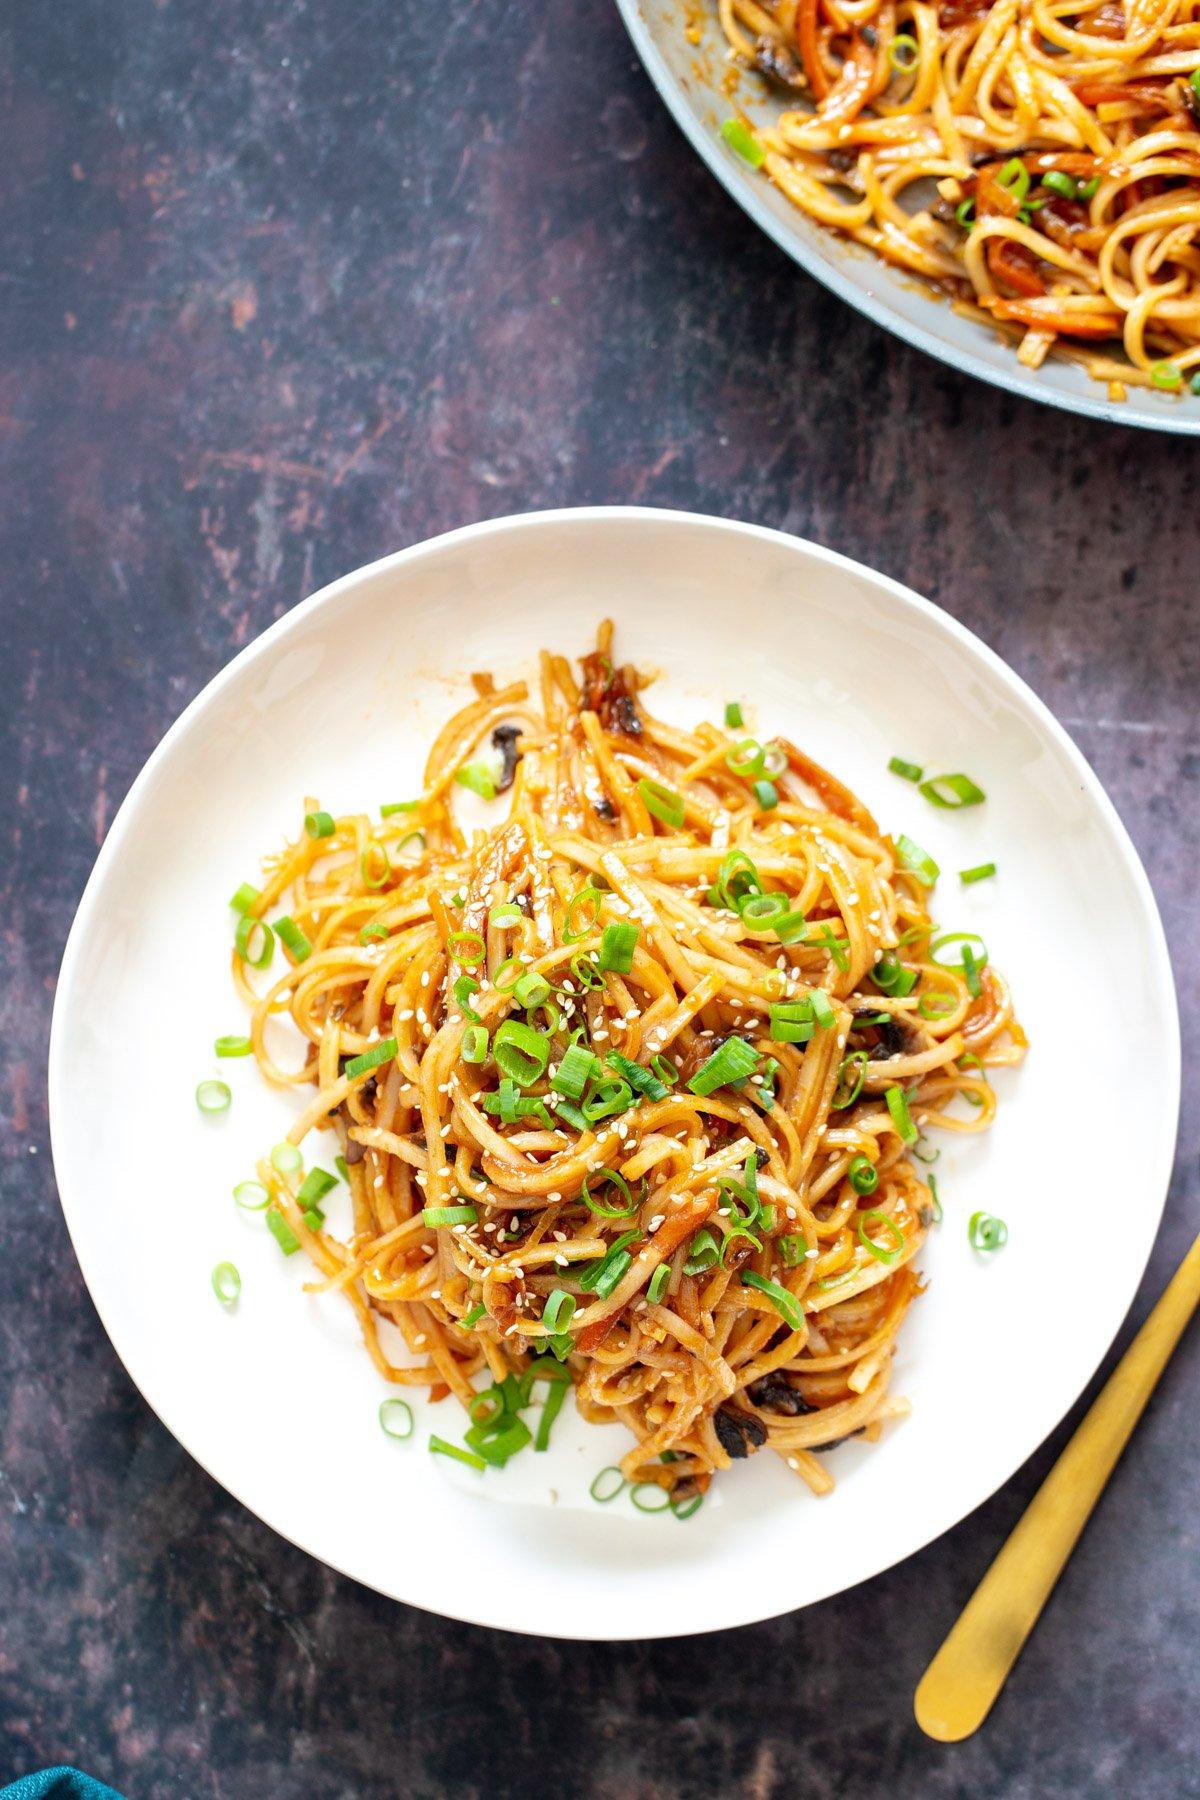 a plate of gochujang noodles topped with sliced spring onions and sesame seeds